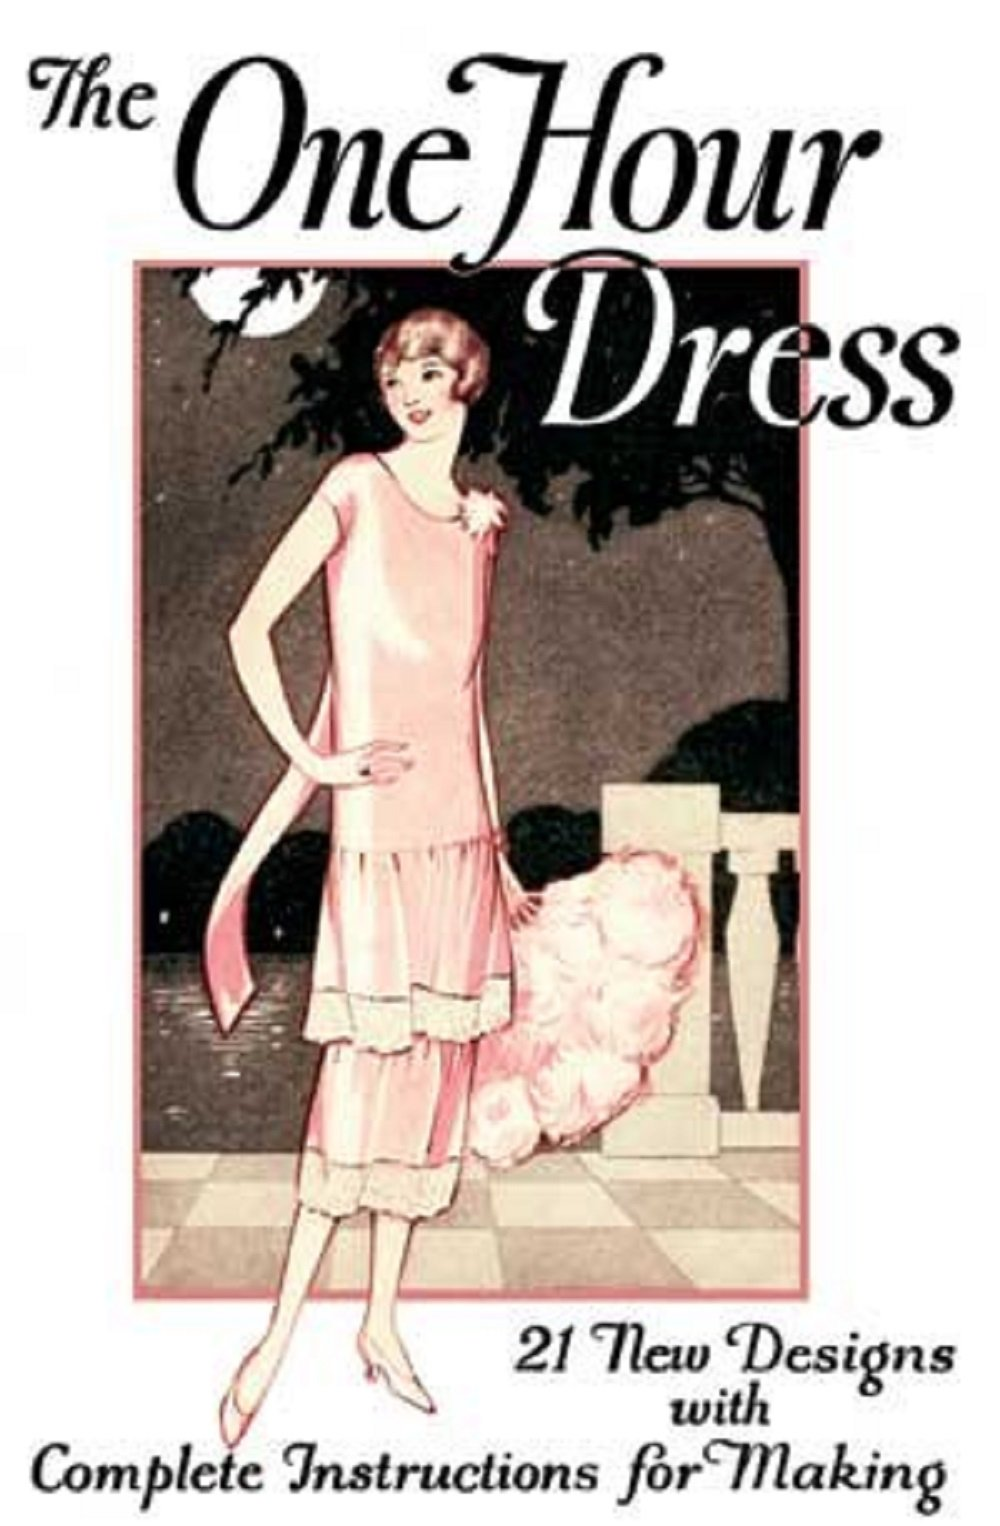 1924 Woman/'s Institute - Sewing w//o Pattern 1920/'s One Hour Dress Book CD